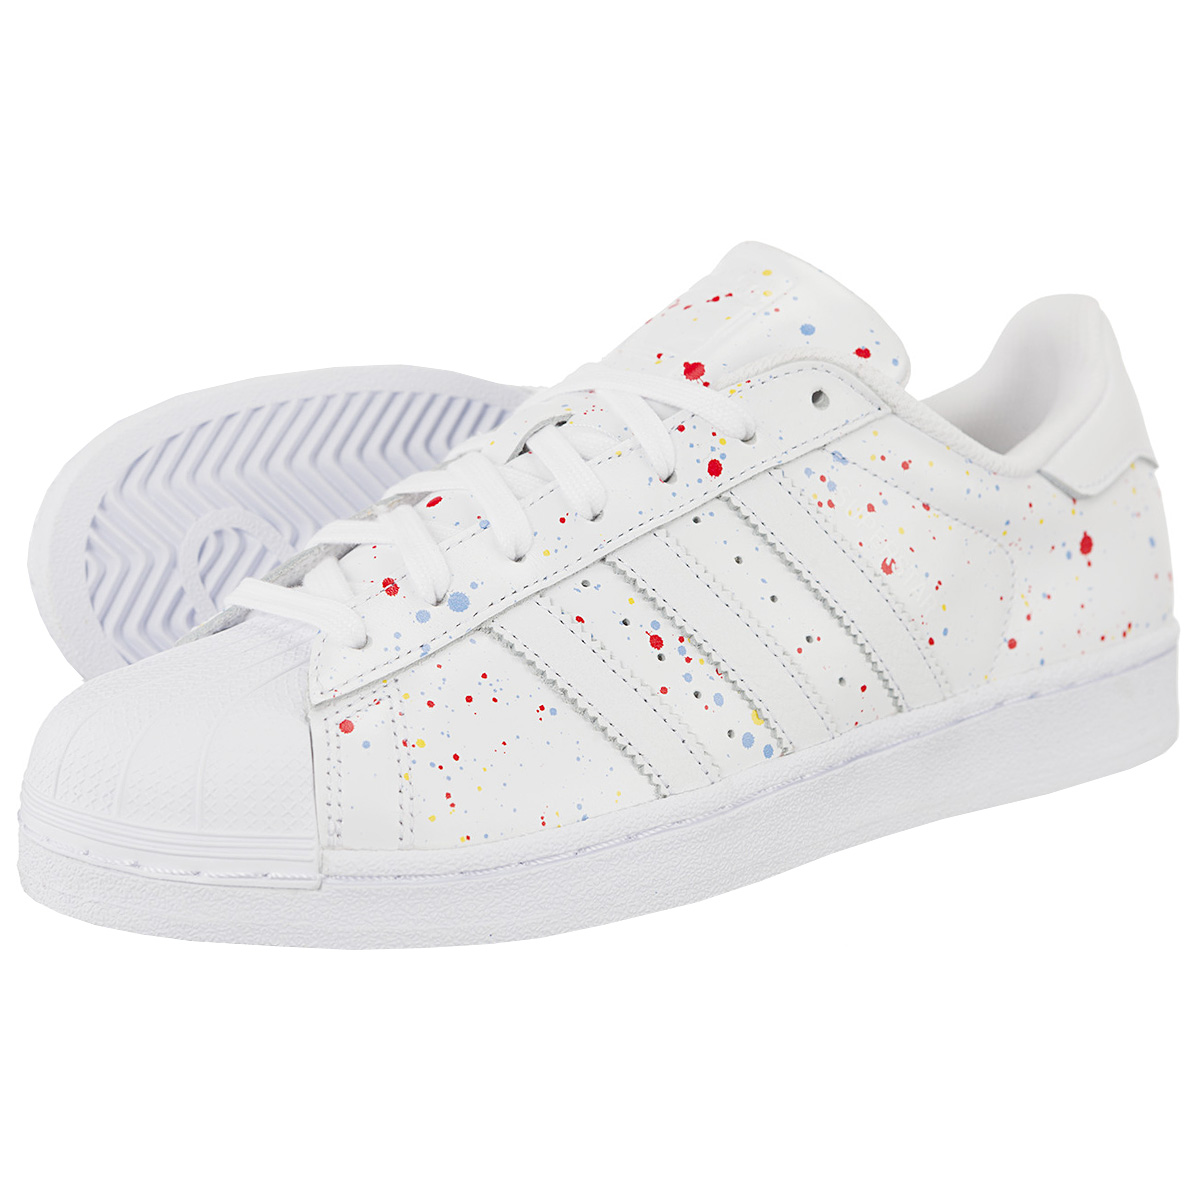 NEW adidas Superstar B42618 Men''s shoes Trainers Sneakers SALE